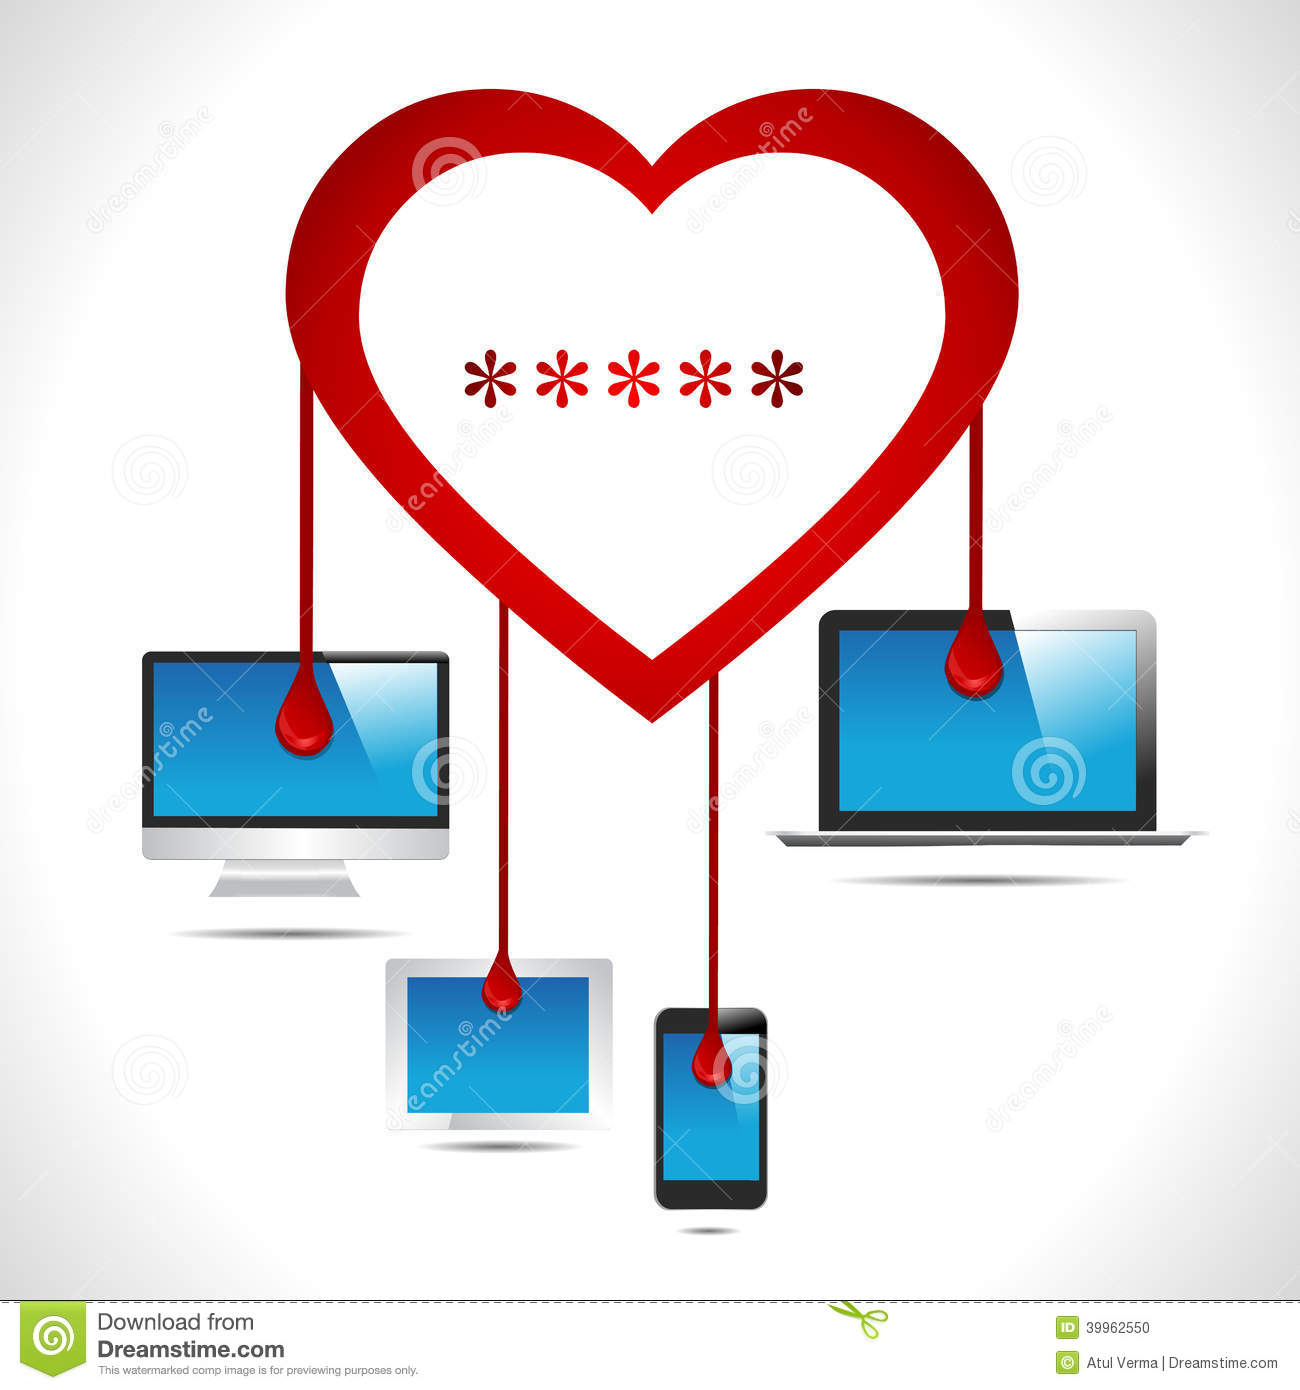 Heartbleed en illustration vectorielle noir et blanc